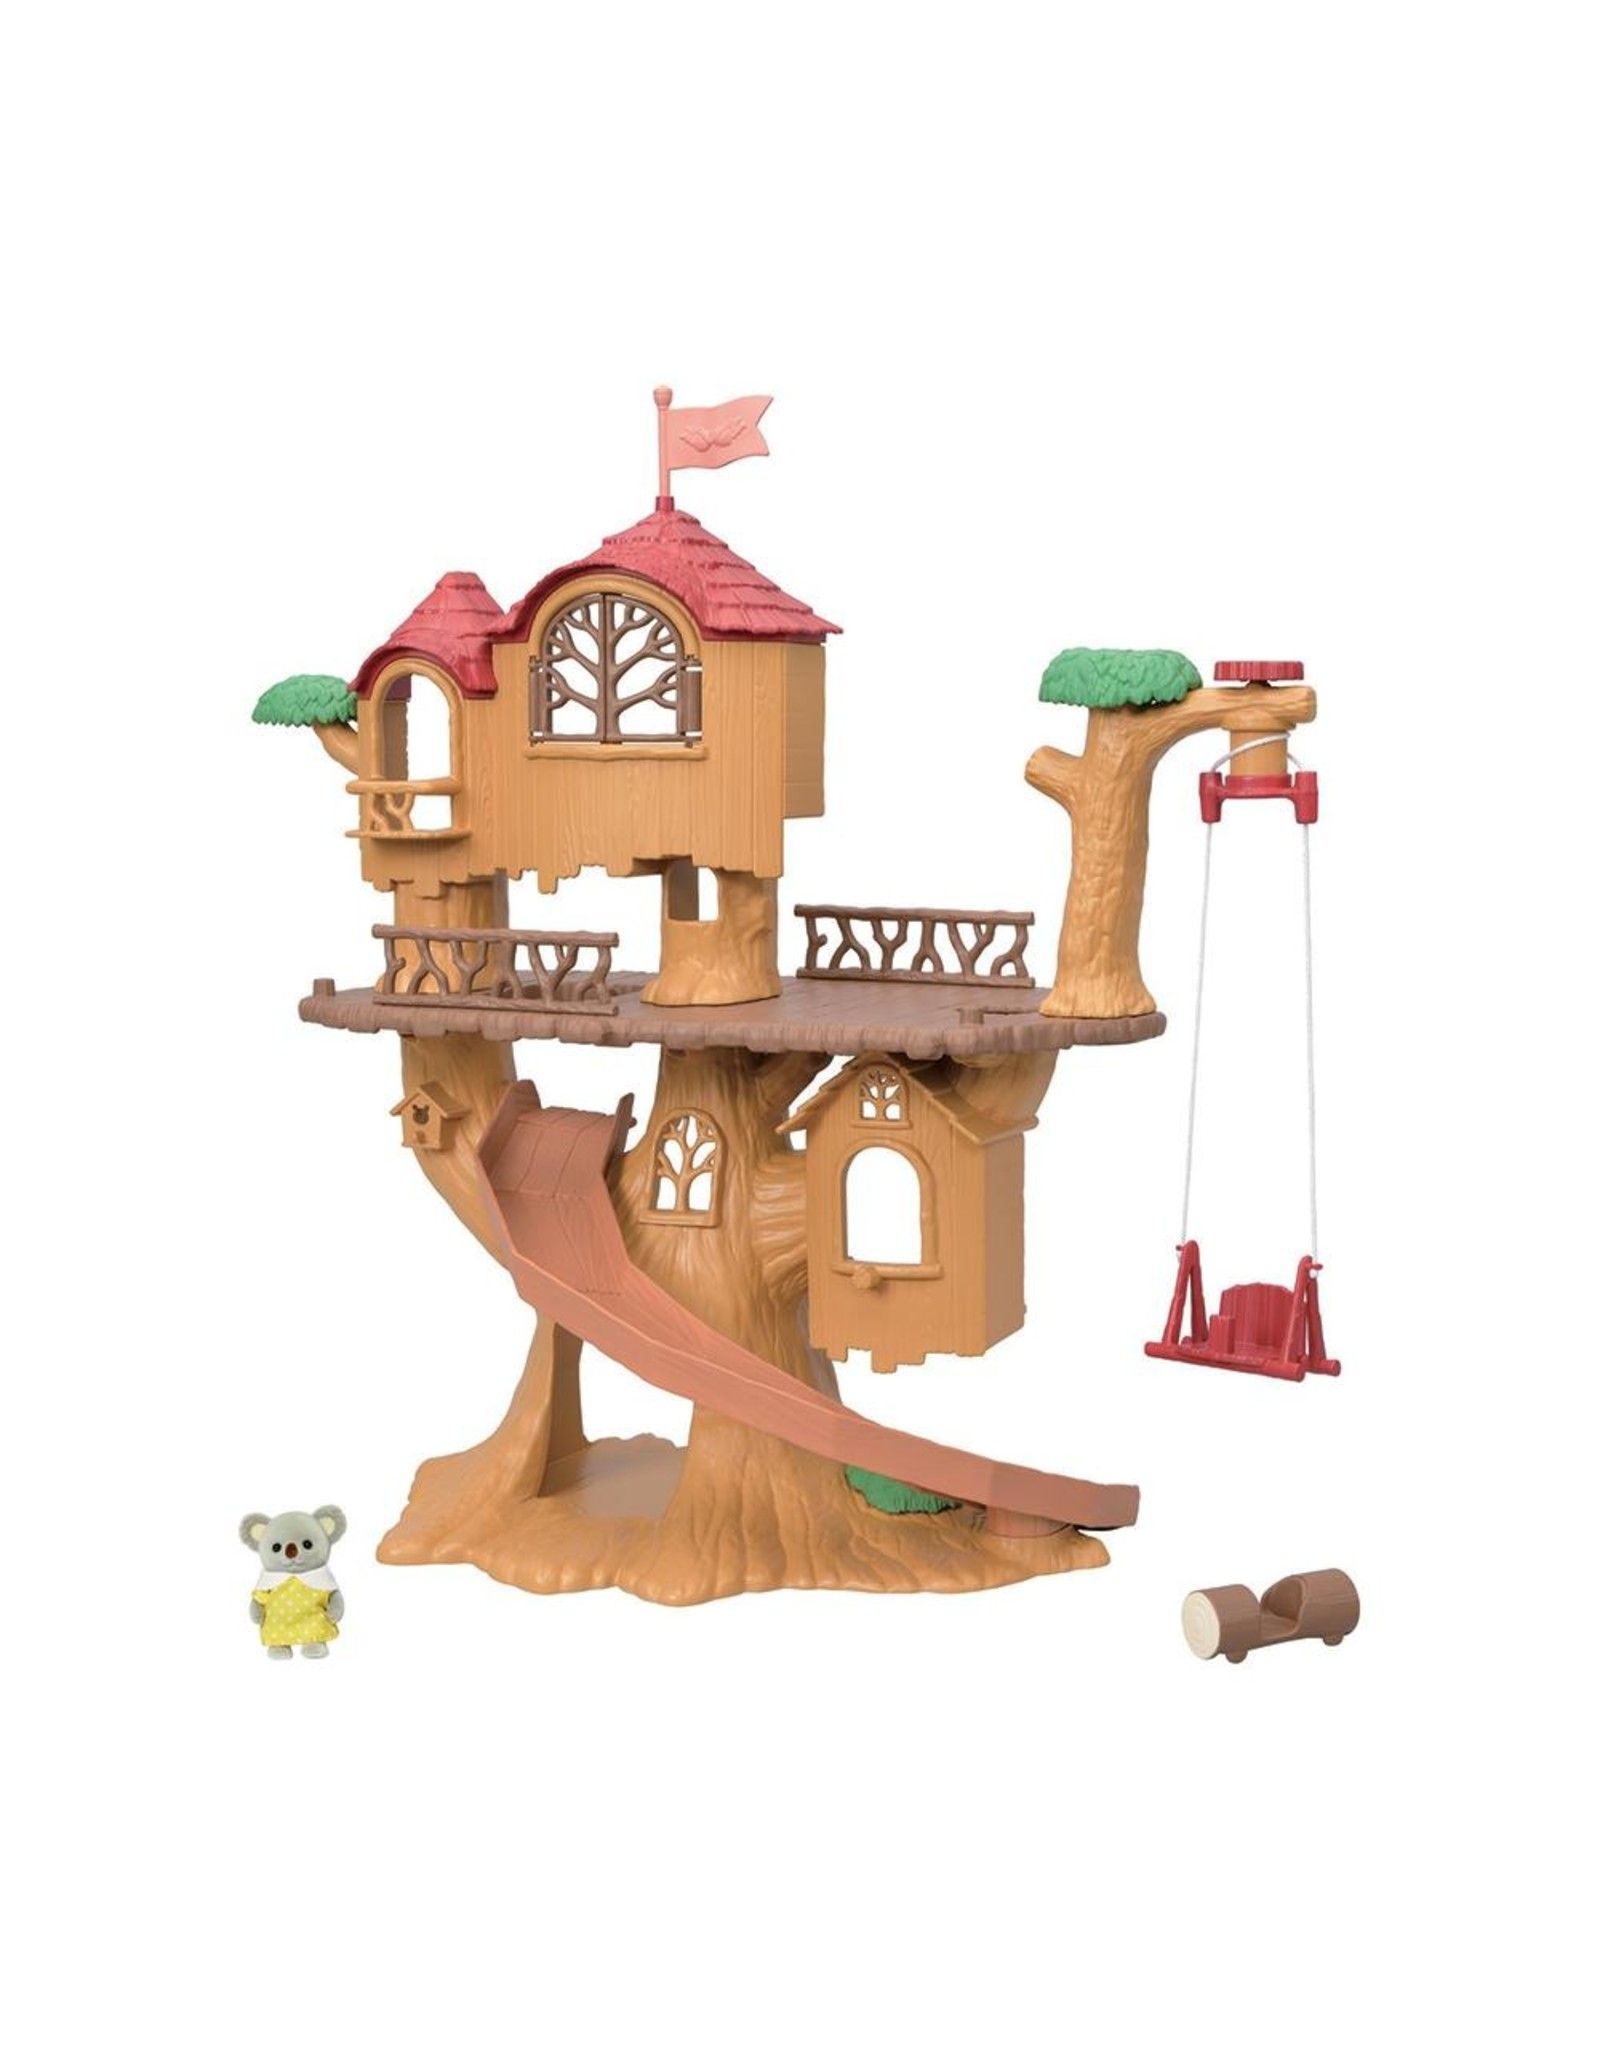 Calico Critters Calico Critters Adventure Tree House Gift Set